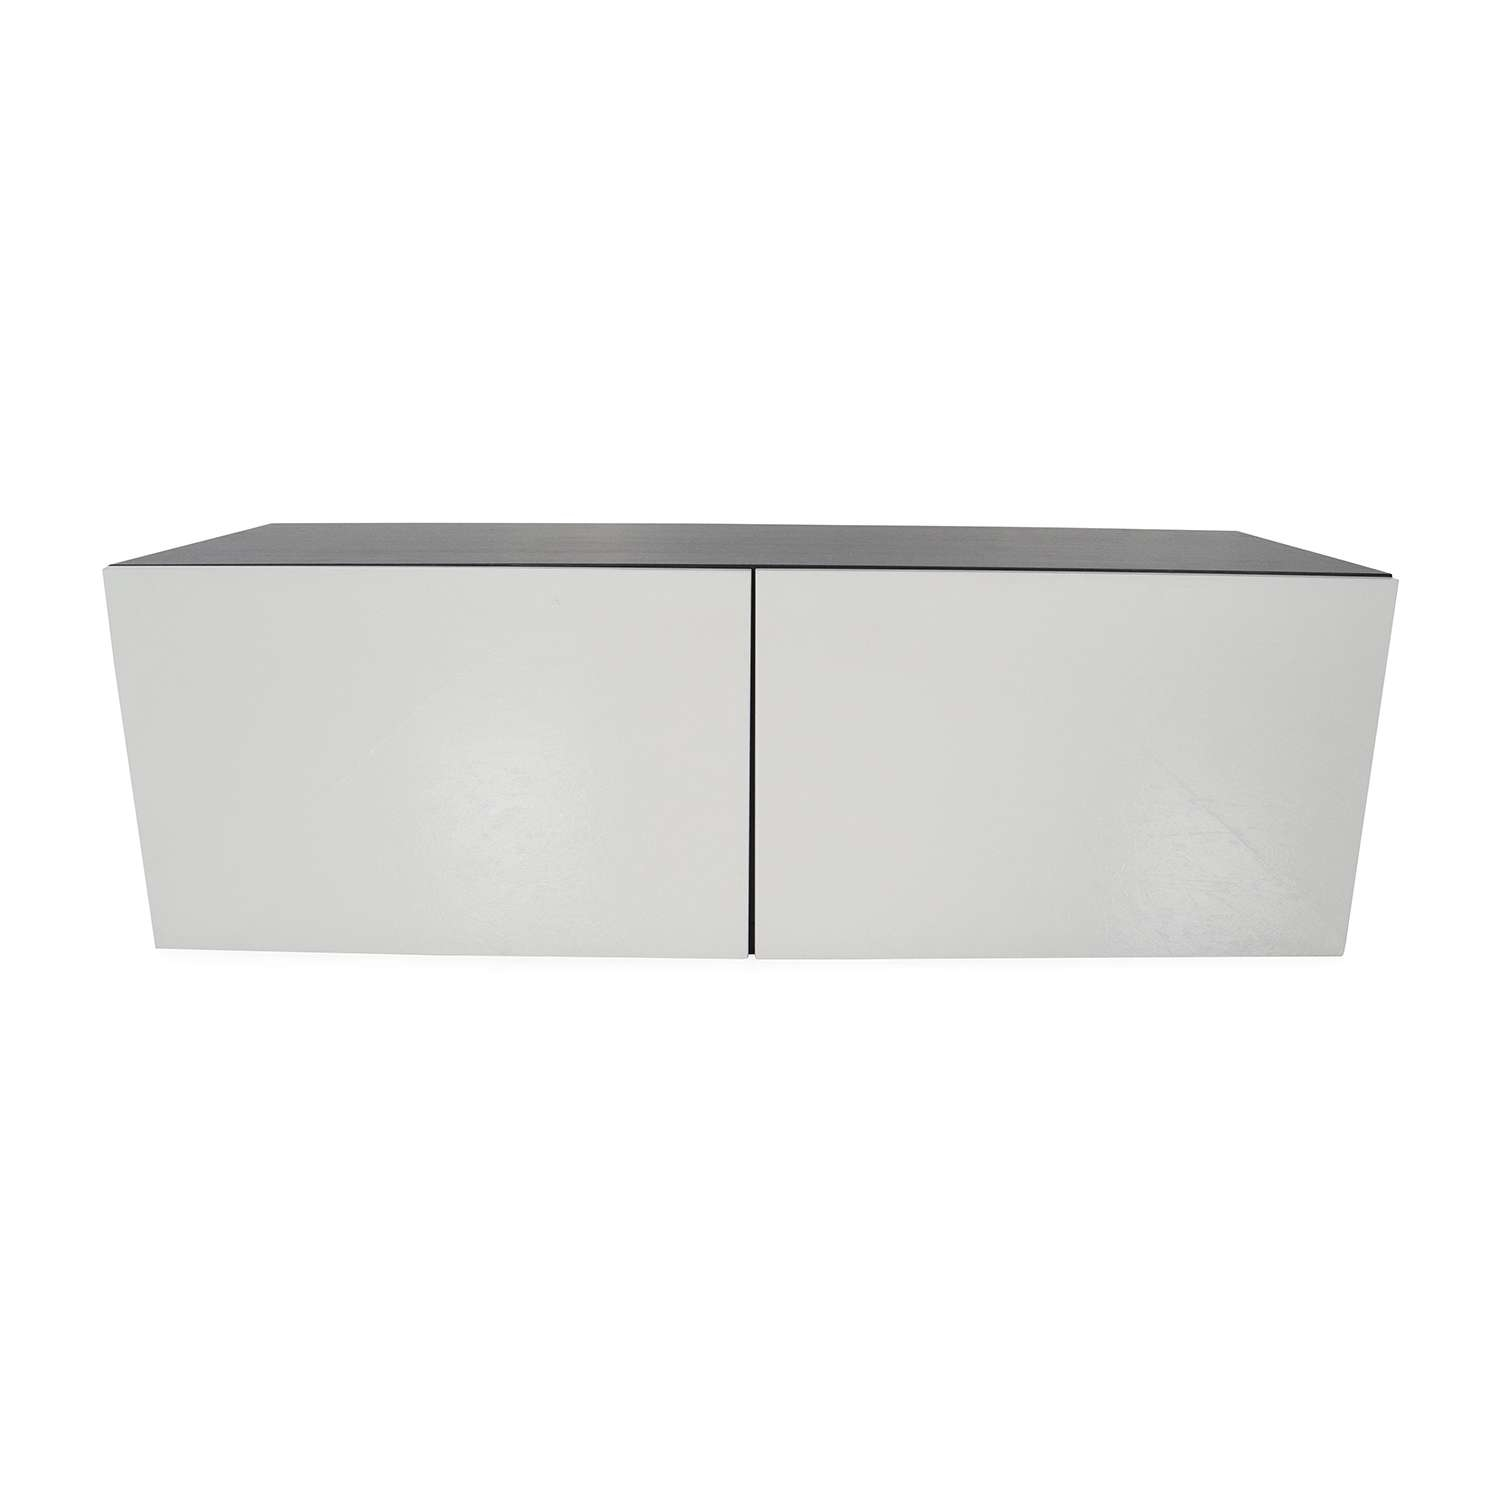 84% Off – Ikea Ikea Low Cabinet / Storage Intended For Ikea Sideboards (View 18 of 20)